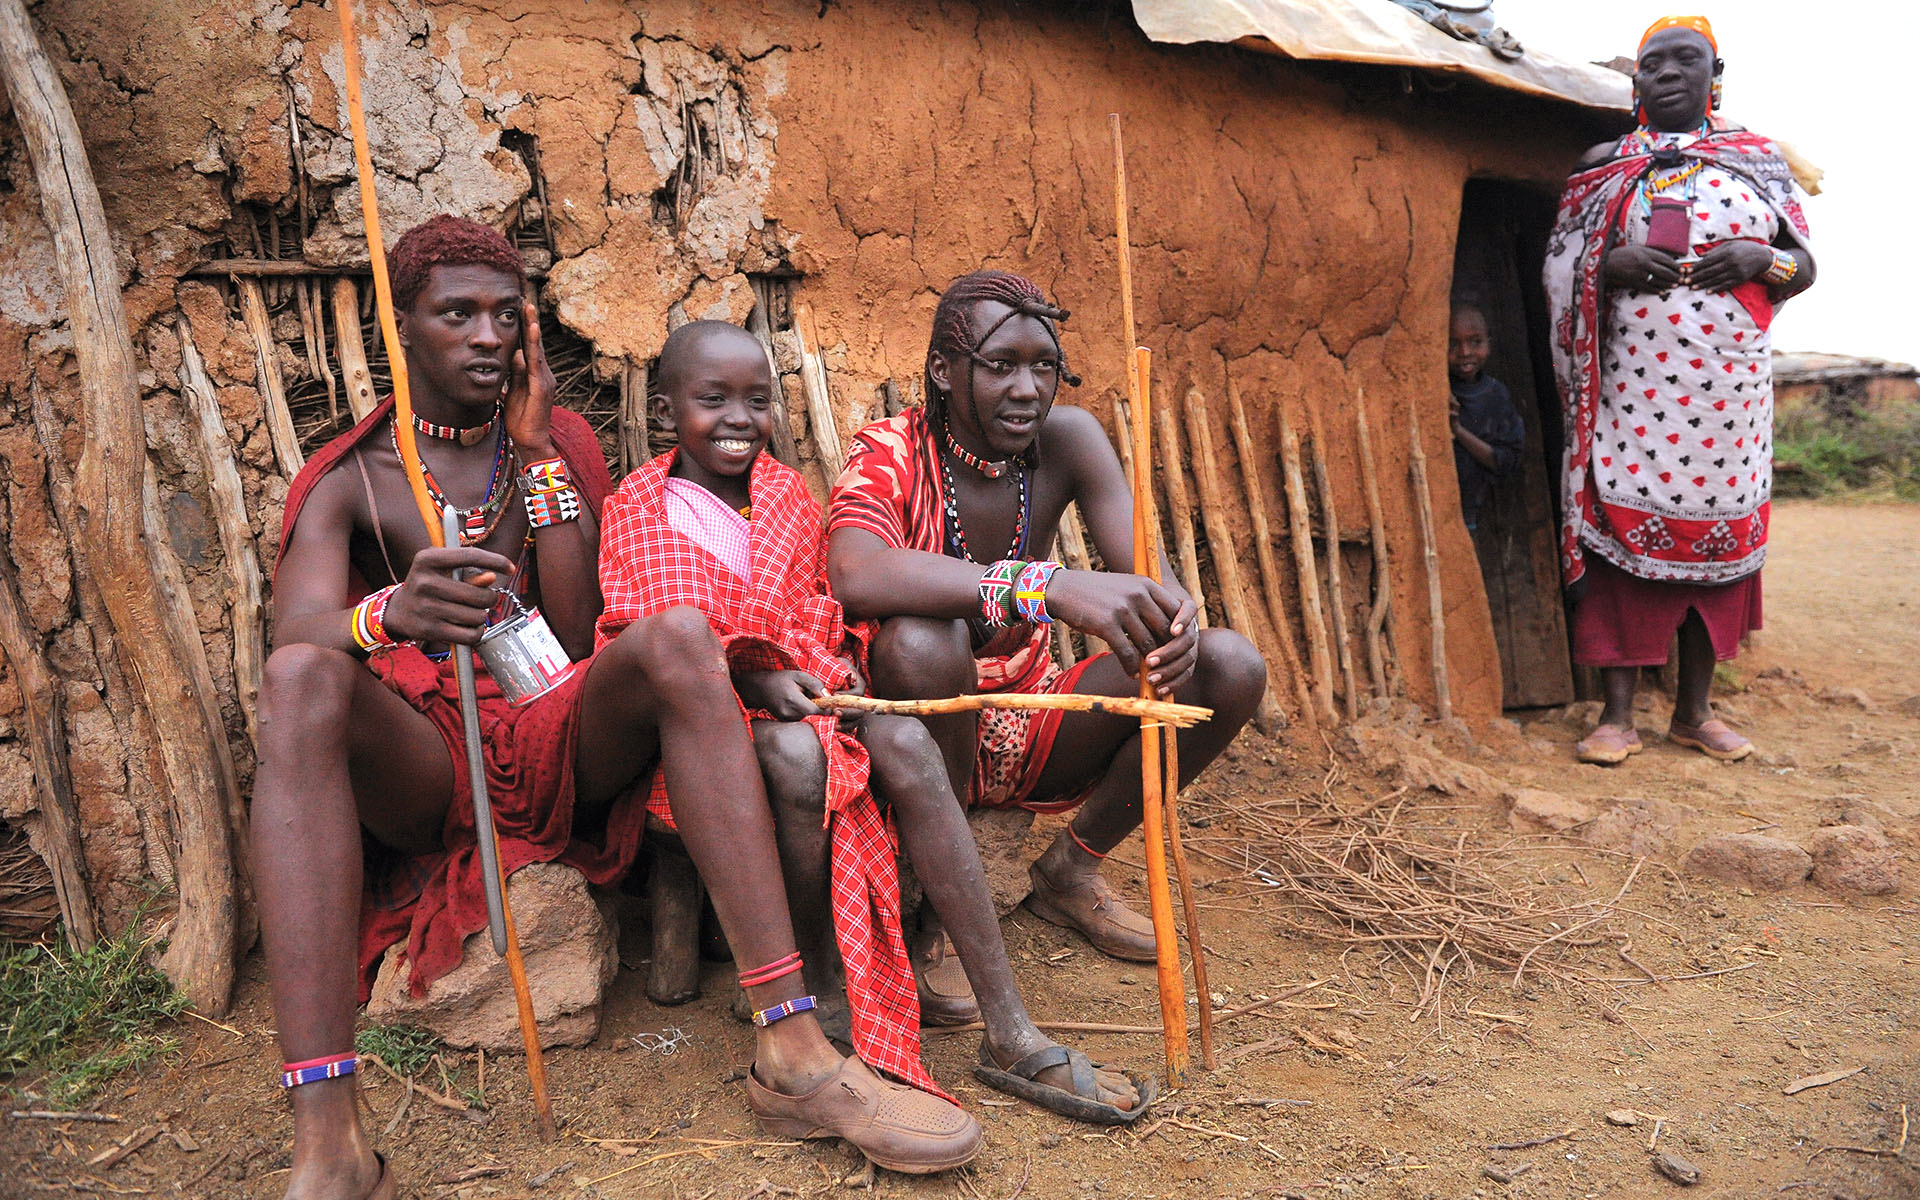 A Kenyan boy sits with two warriors from his village